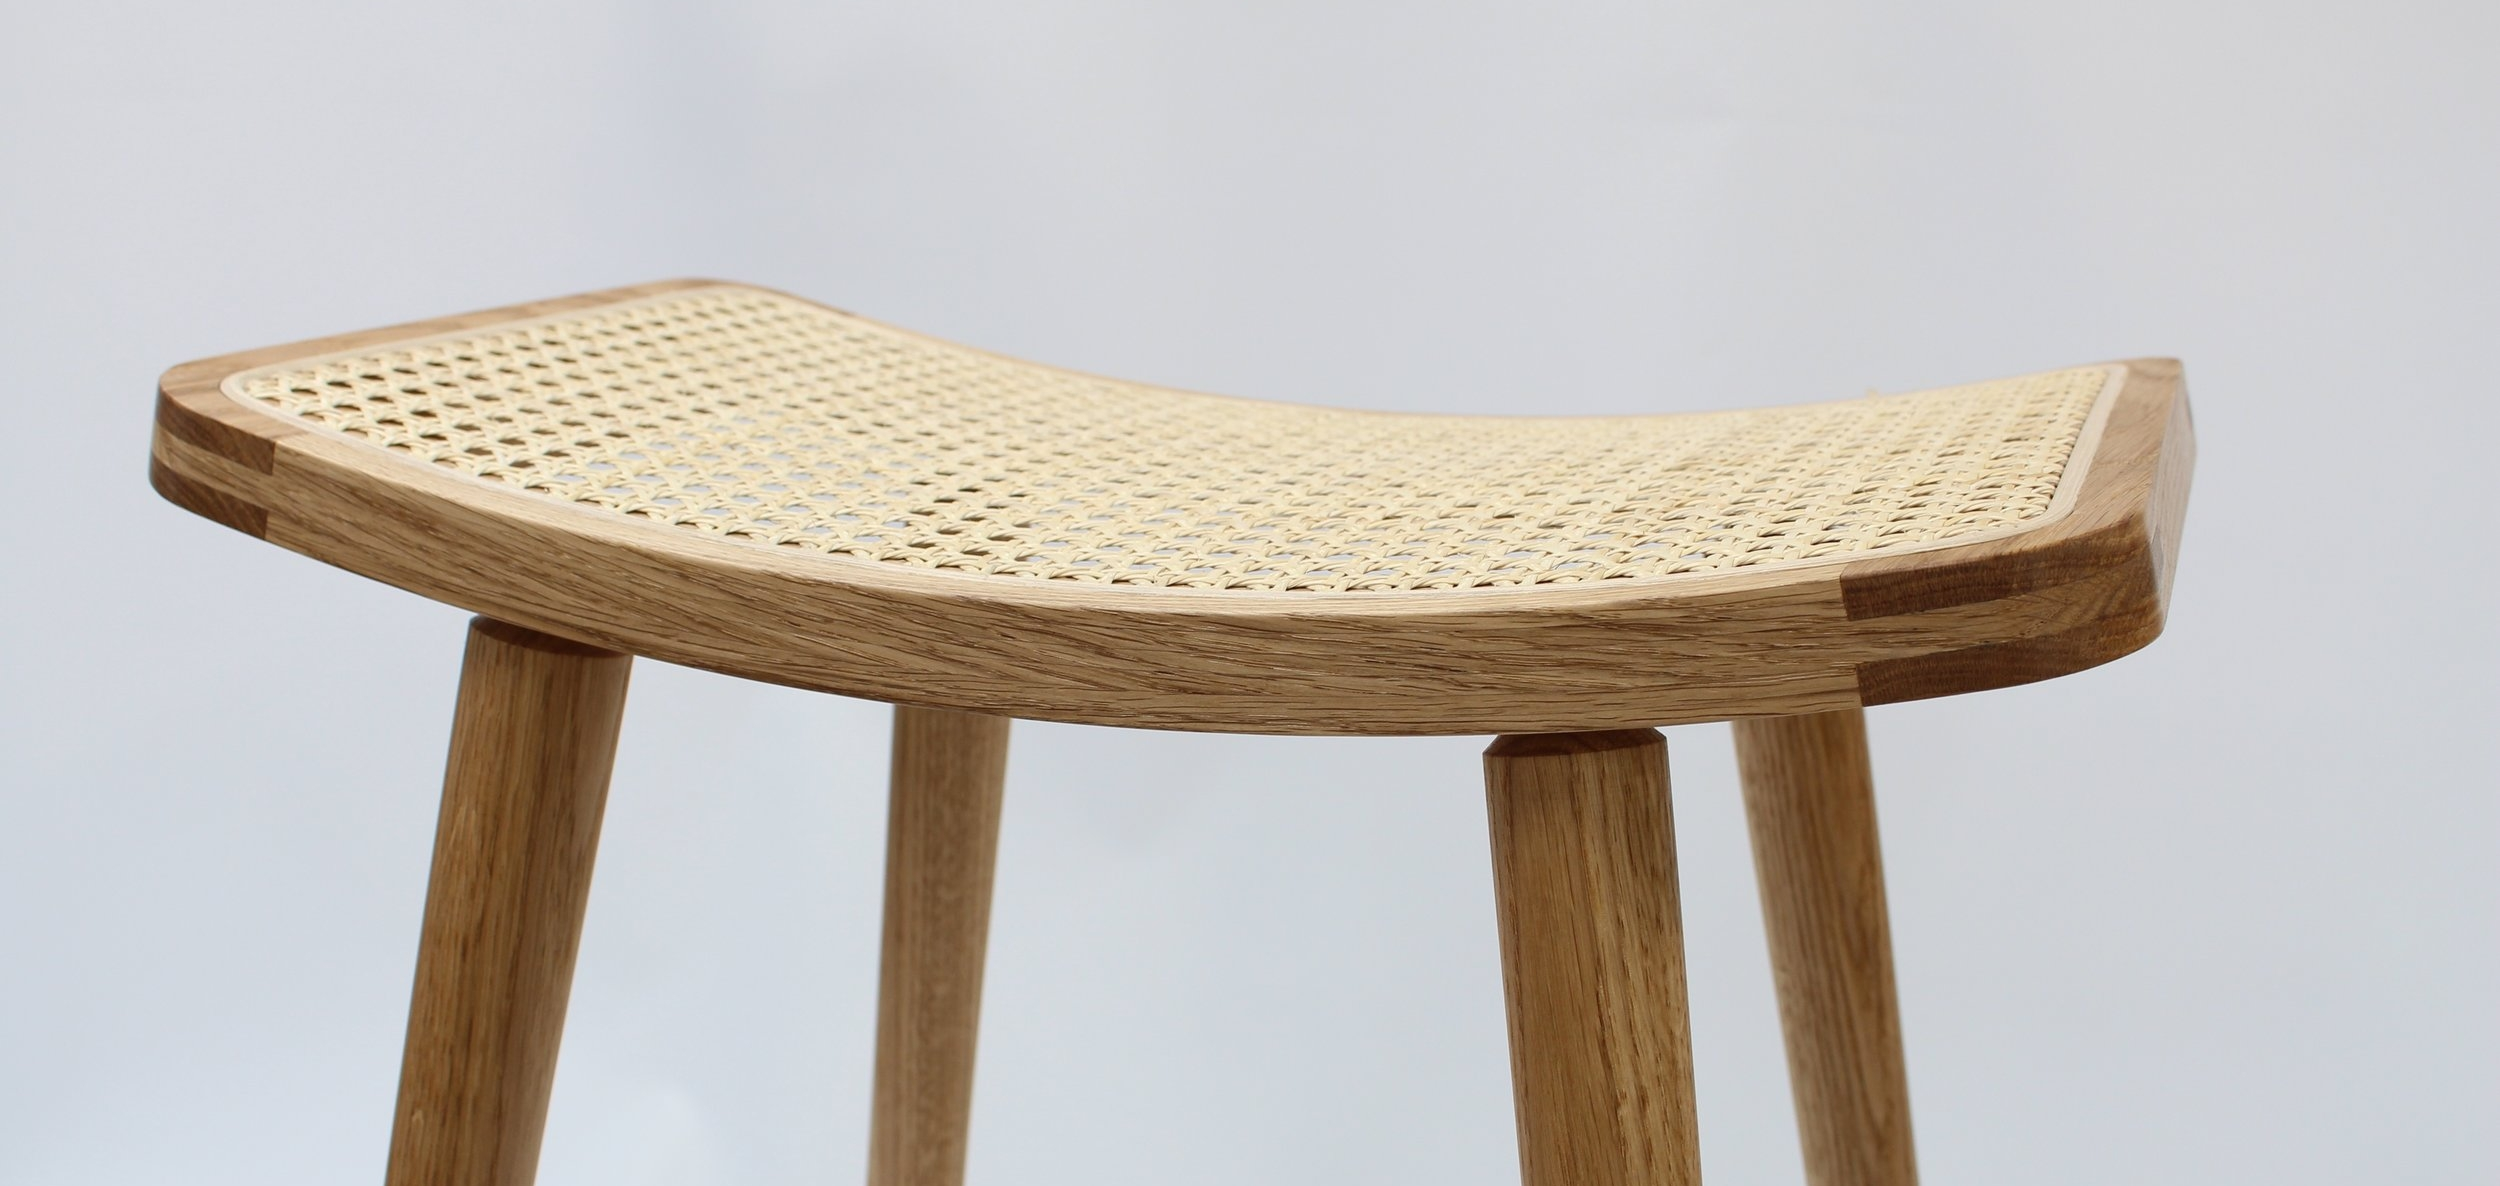 Loreta stool - see our full range of furniture here